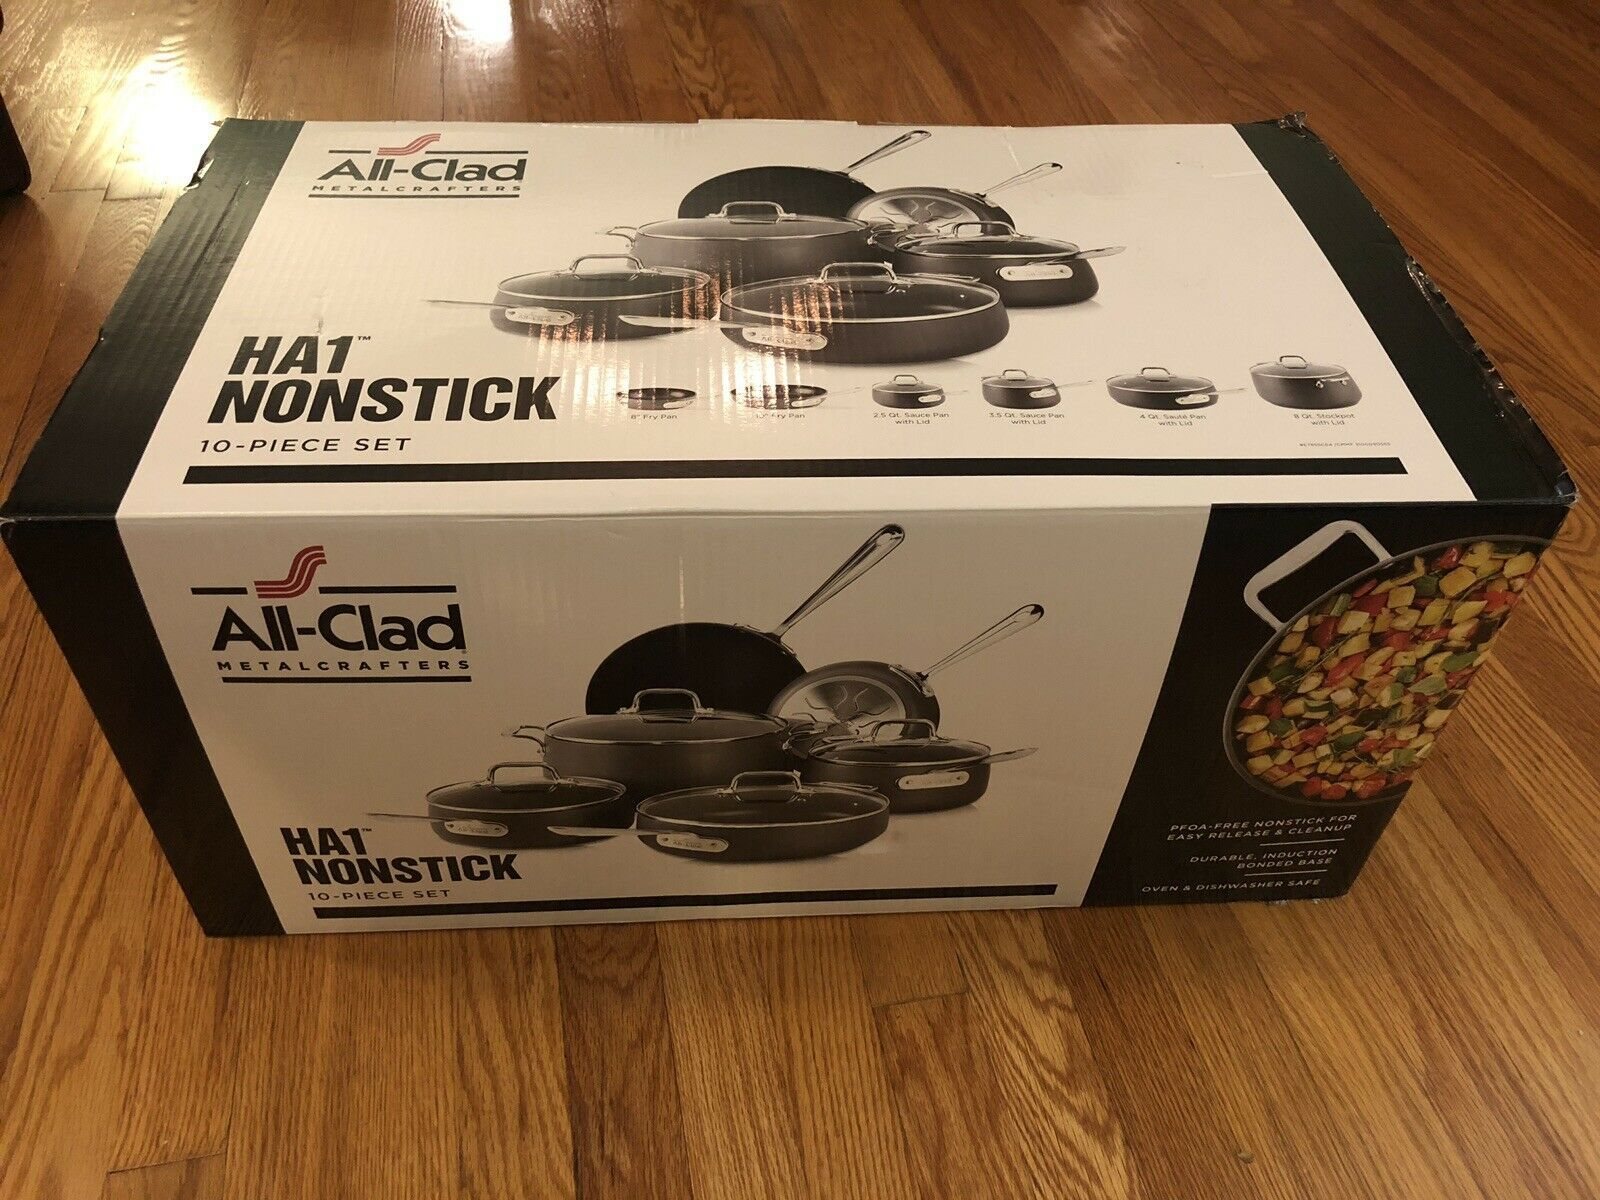 New All Clad Ha1 10 Piece Pots And Pans Set Hard Anodized Non